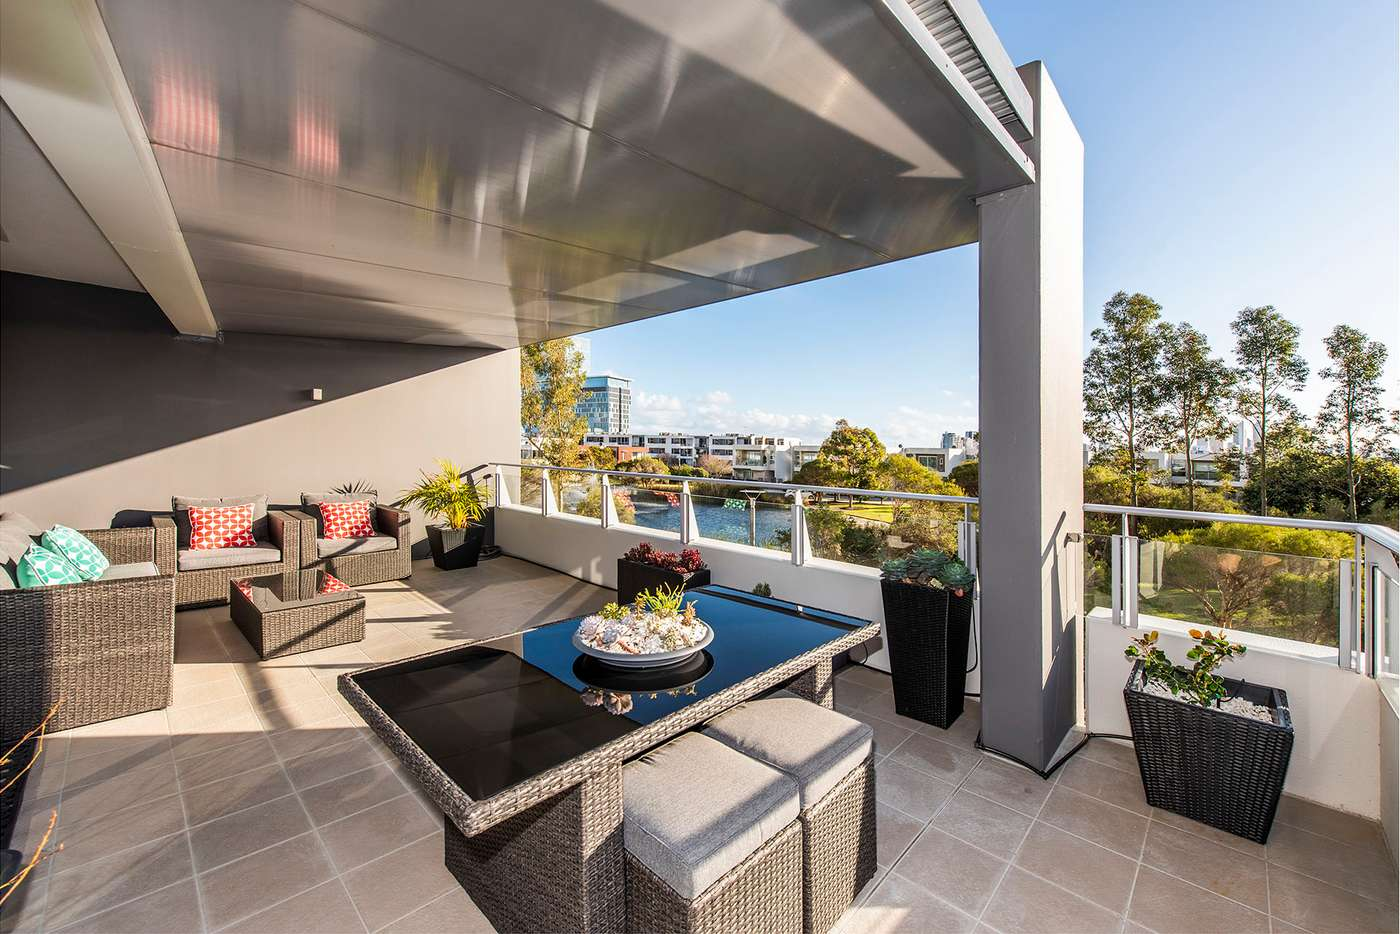 Main view of Homely apartment listing, 205/30 The Circus, Burswood WA 6100